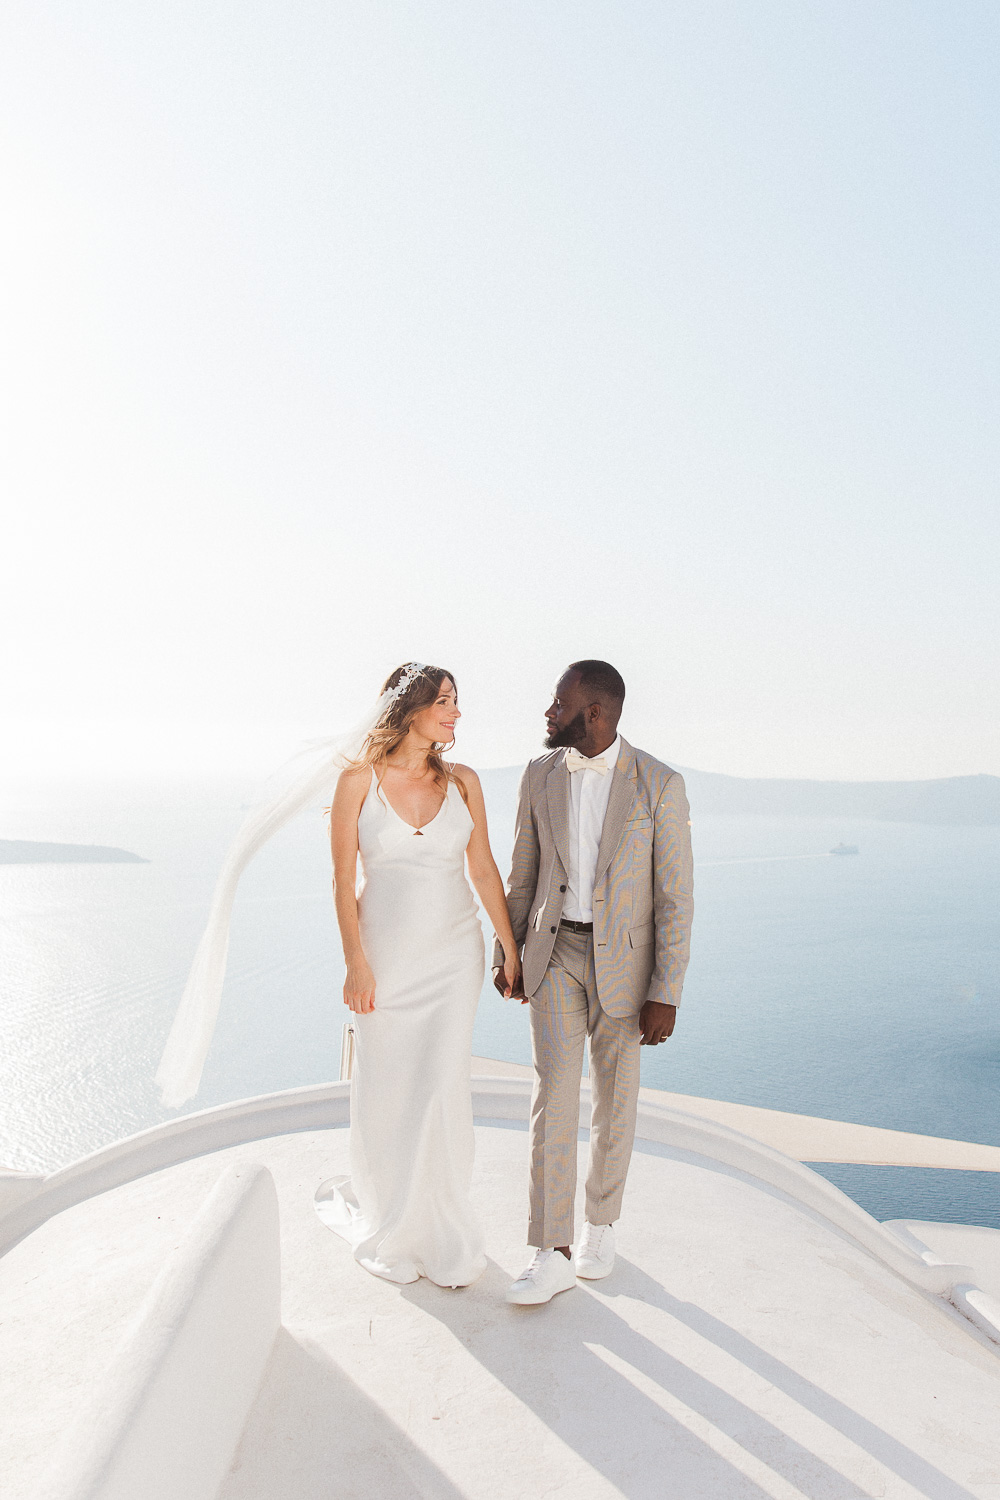 Bride and groom walking on a Santorini rooftop on their wedding day